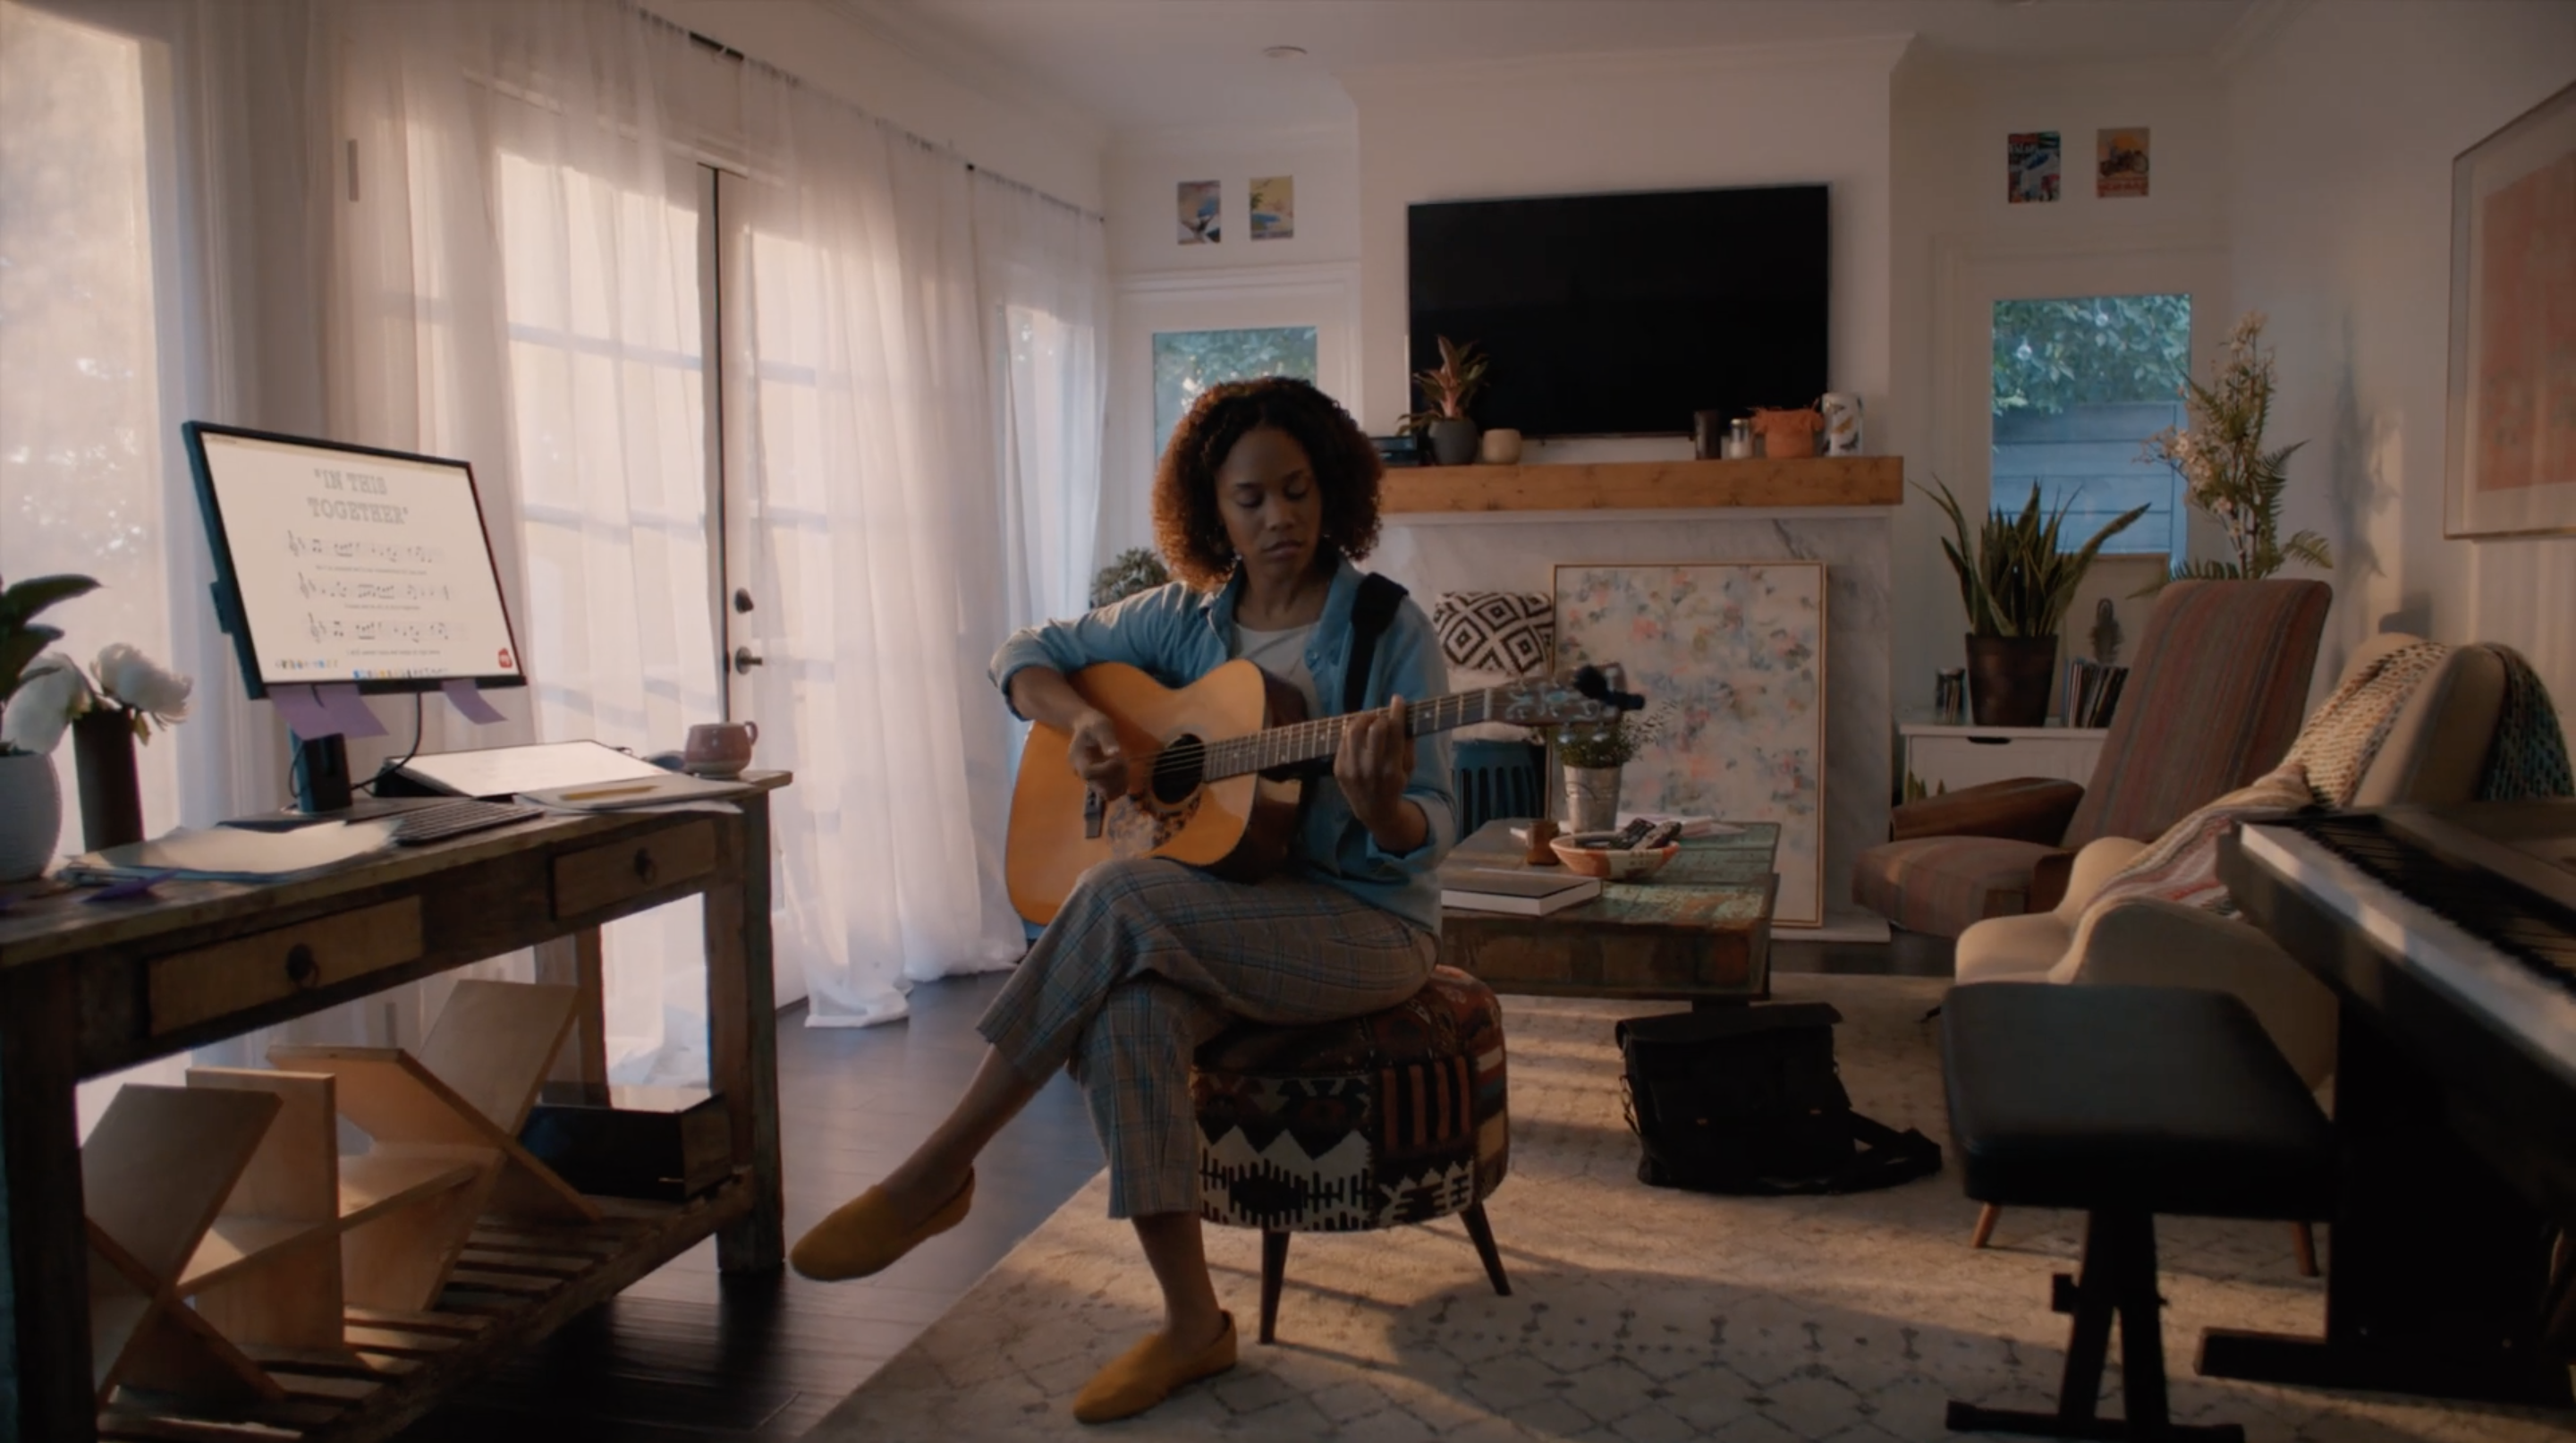 a woman playing guitar in her living room